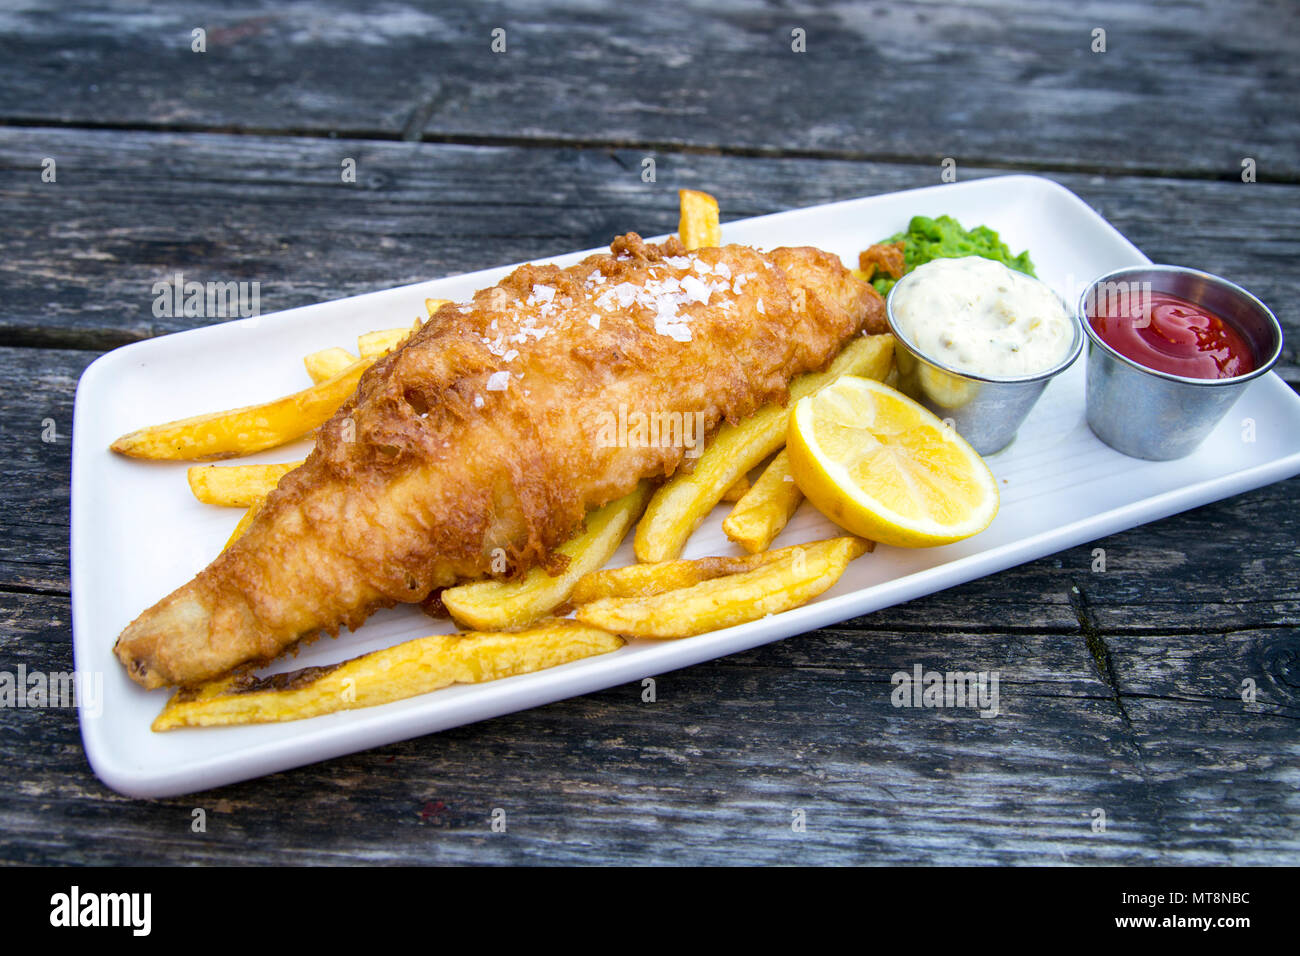 Plate of breaded fish and chips with mushy peas and tartar sauce served on a wooden table - Stock Image